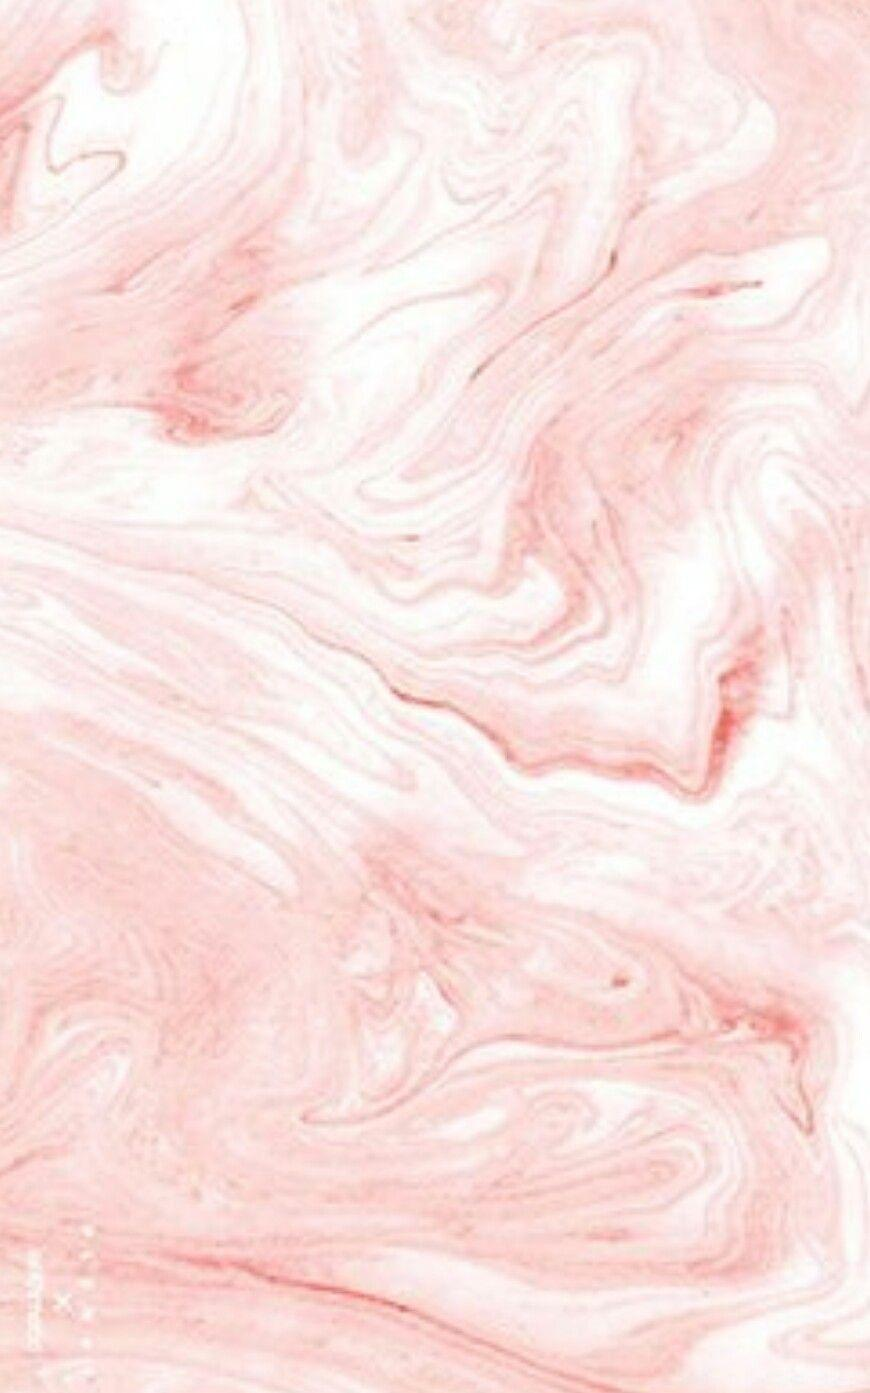 Pink Marble Wallpapers Wallpaper Cave Images, Photos, Reviews